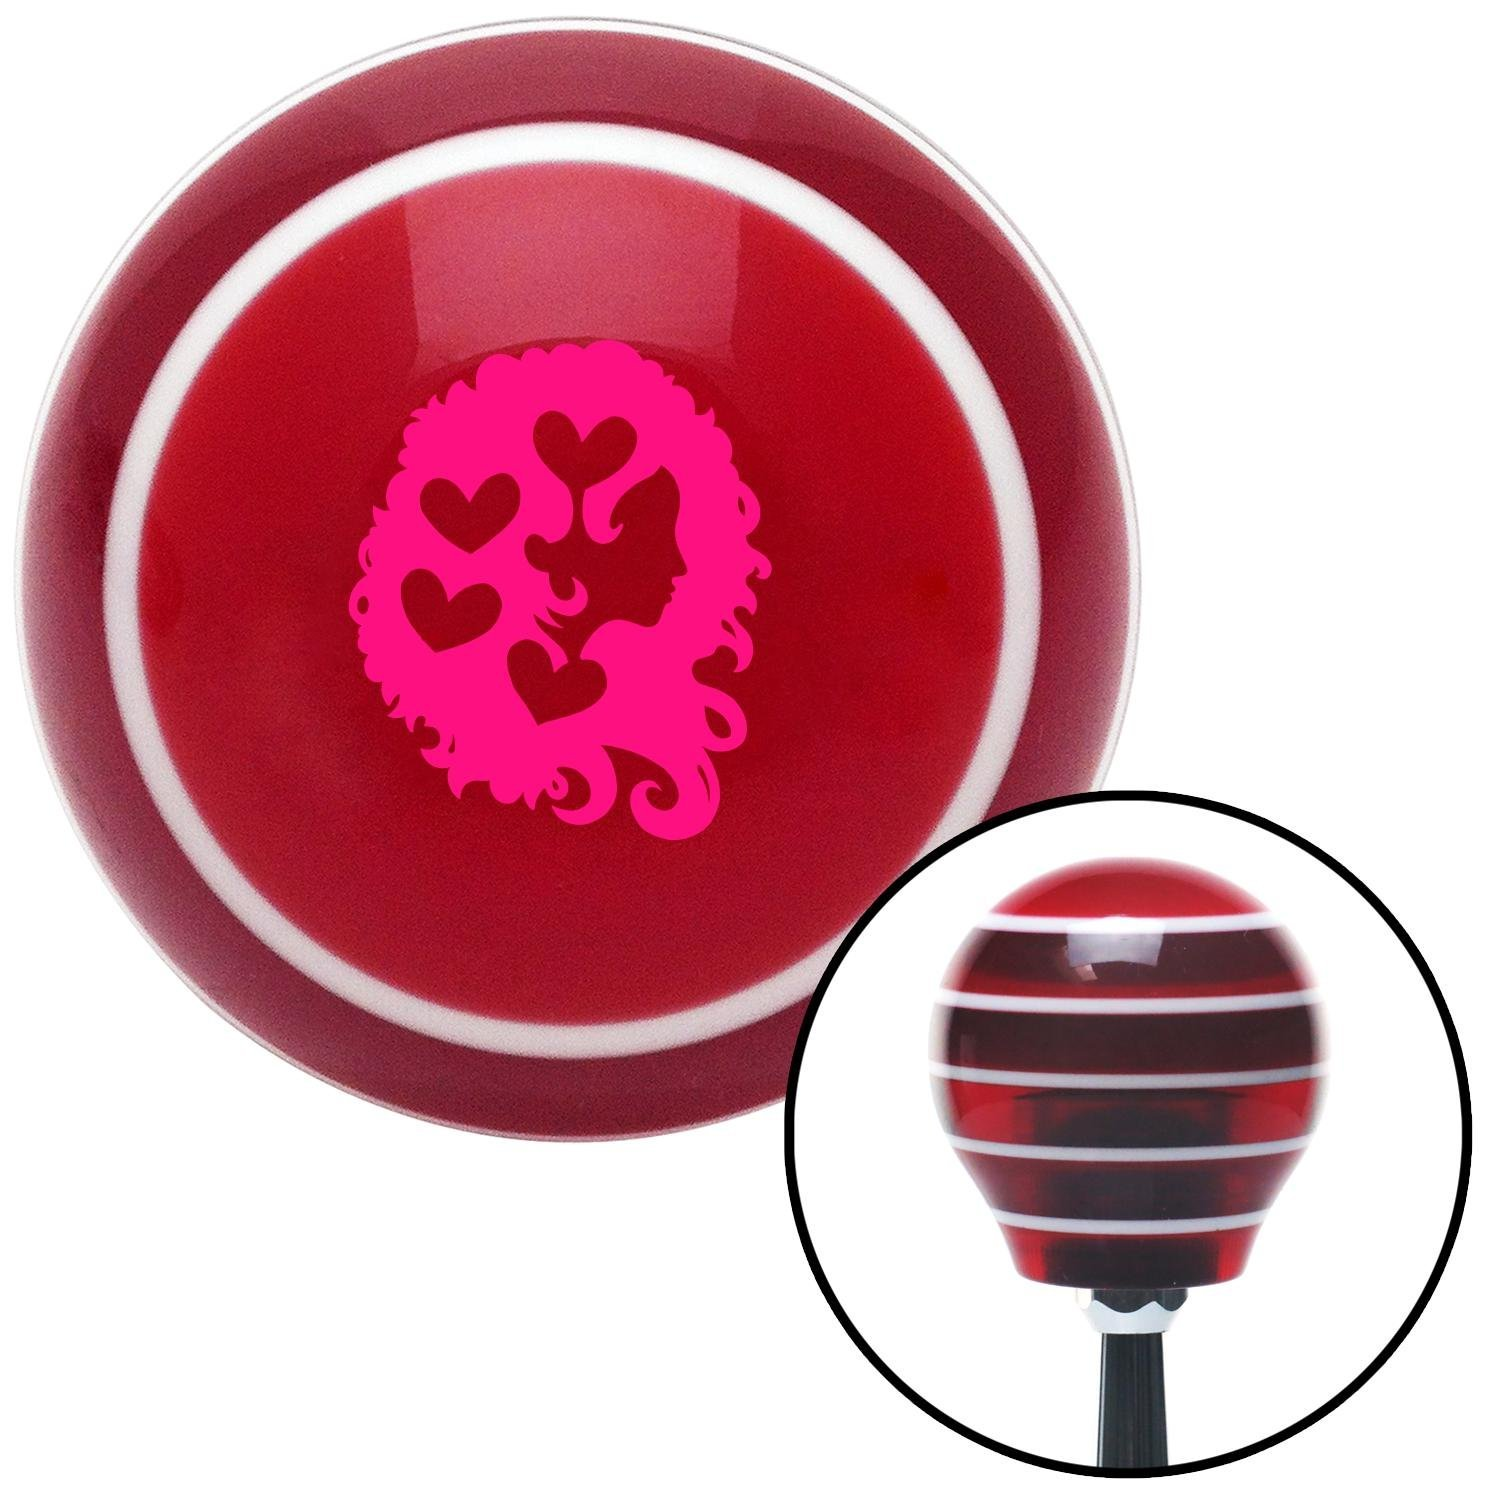 Pink Heart Girl American Shifter 116655 Red Stripe Shift Knob with M16 x 1.5 Insert